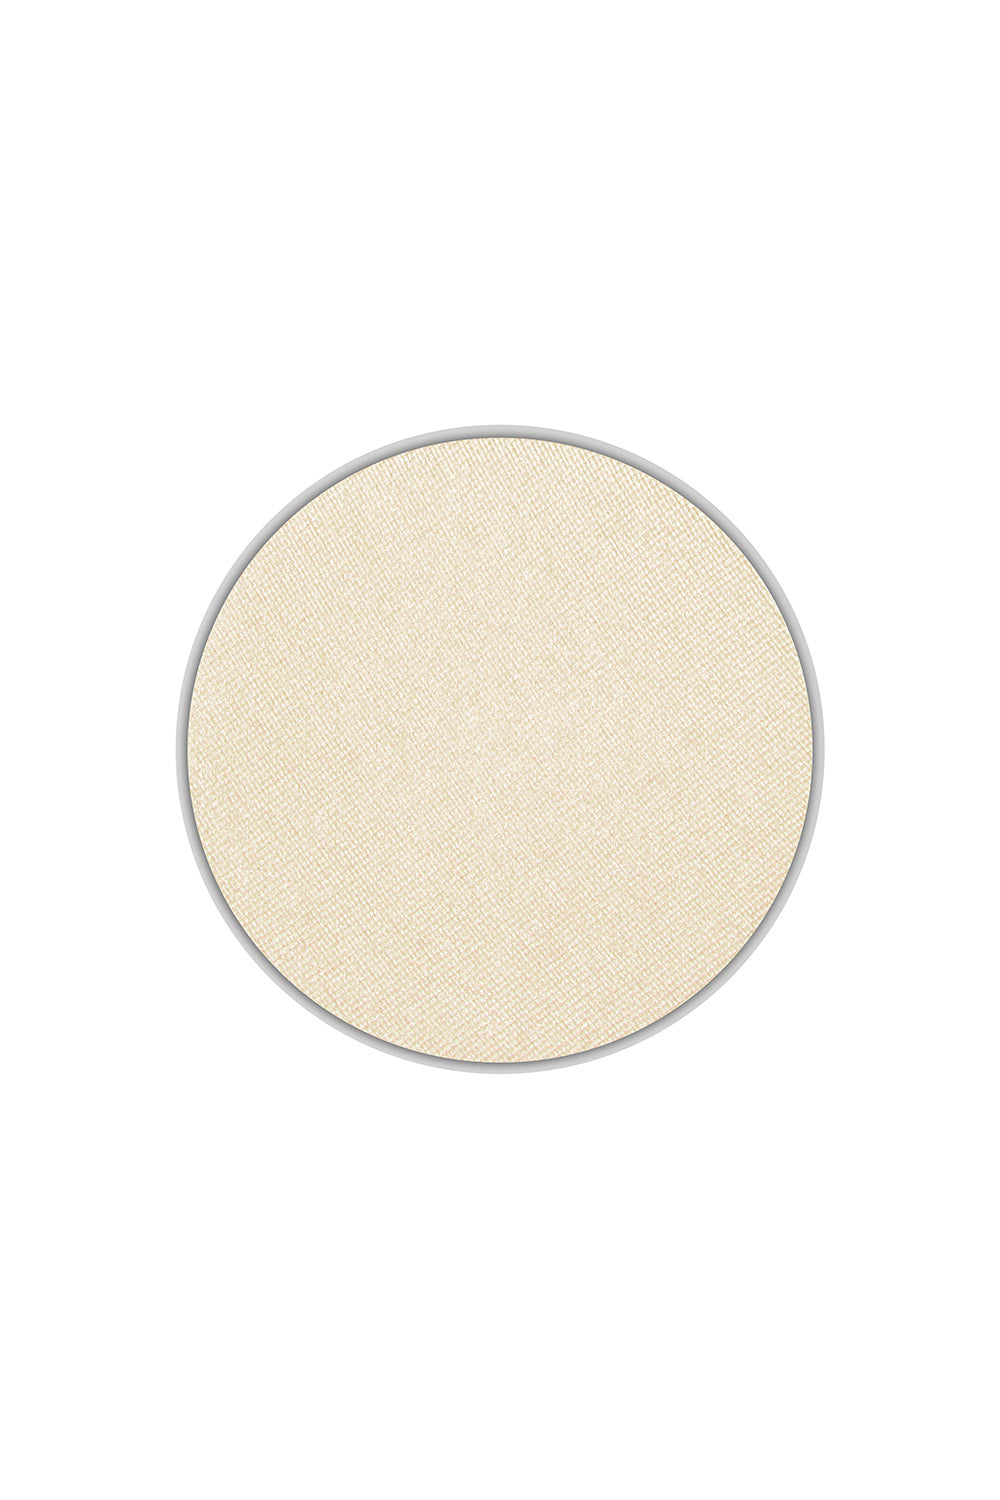 Type 1 Eyeshadow Pan - White Gold